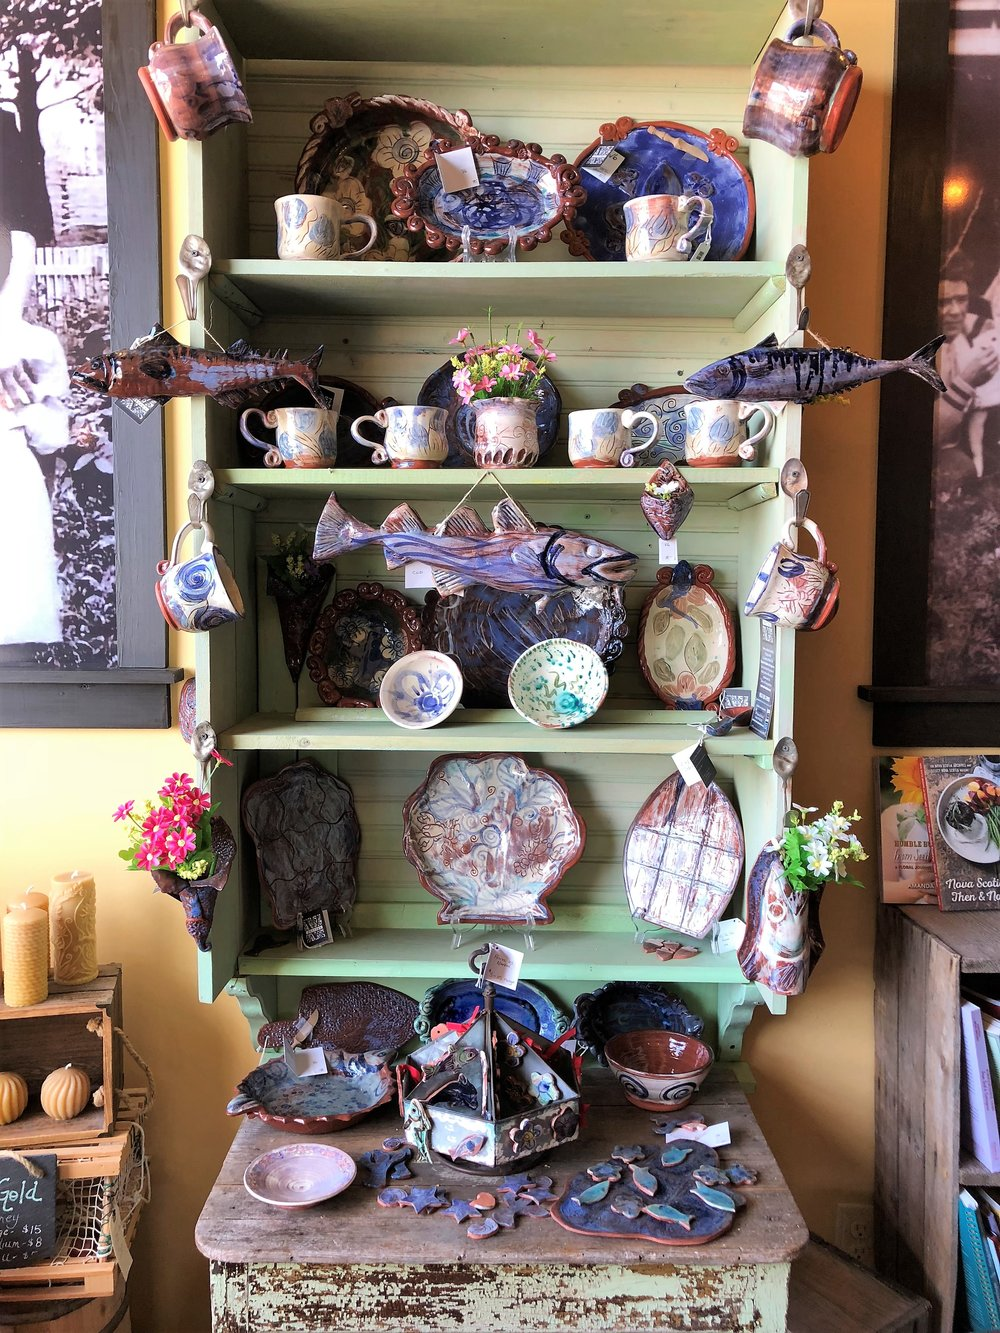 V Pottery - is a small pottery studio on Isle Madame owned by artist Victoria Bonin MacKenzie.